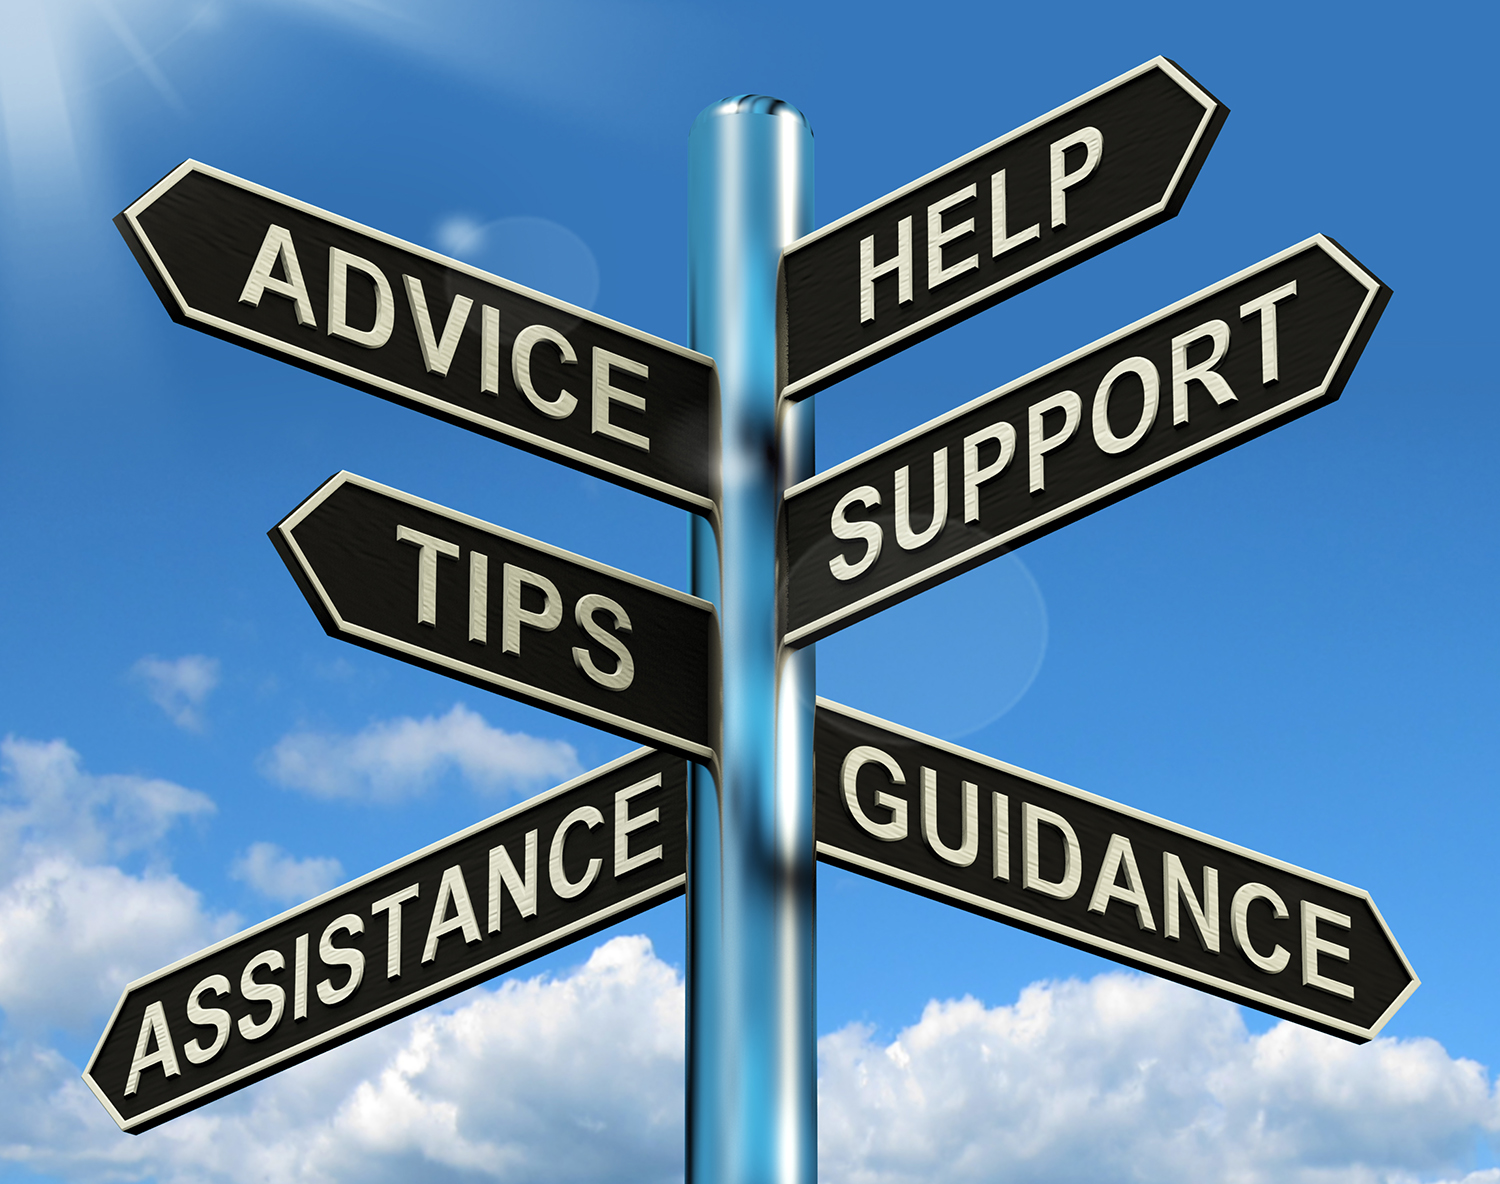 directional road sign pointing to advice, tips, help, support